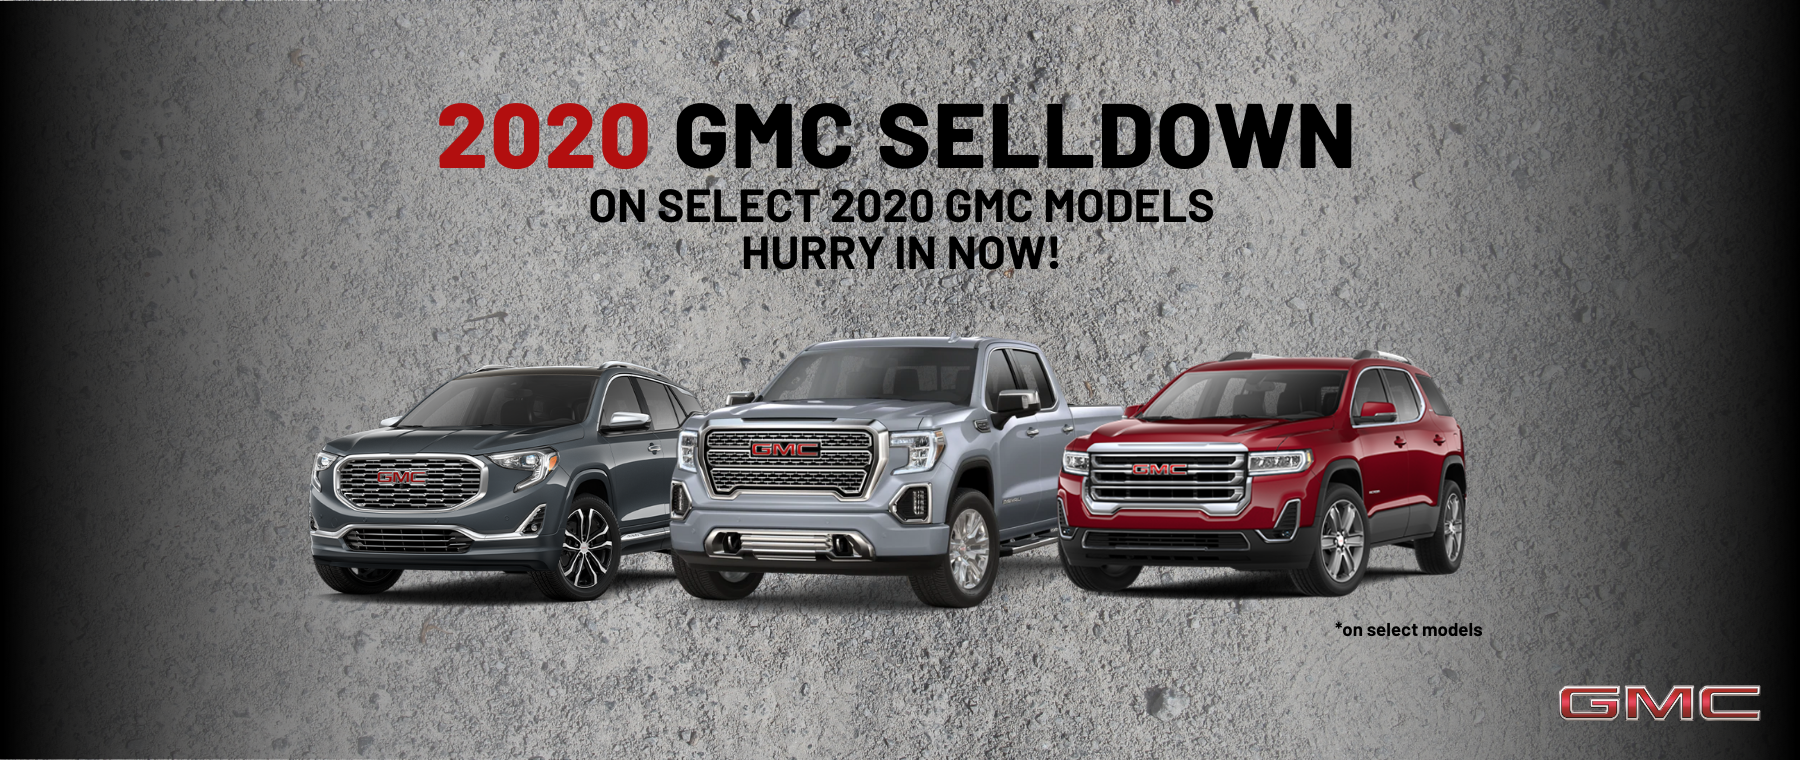 GMC Truck 2020 Model Year Sell Down in West Bend WI